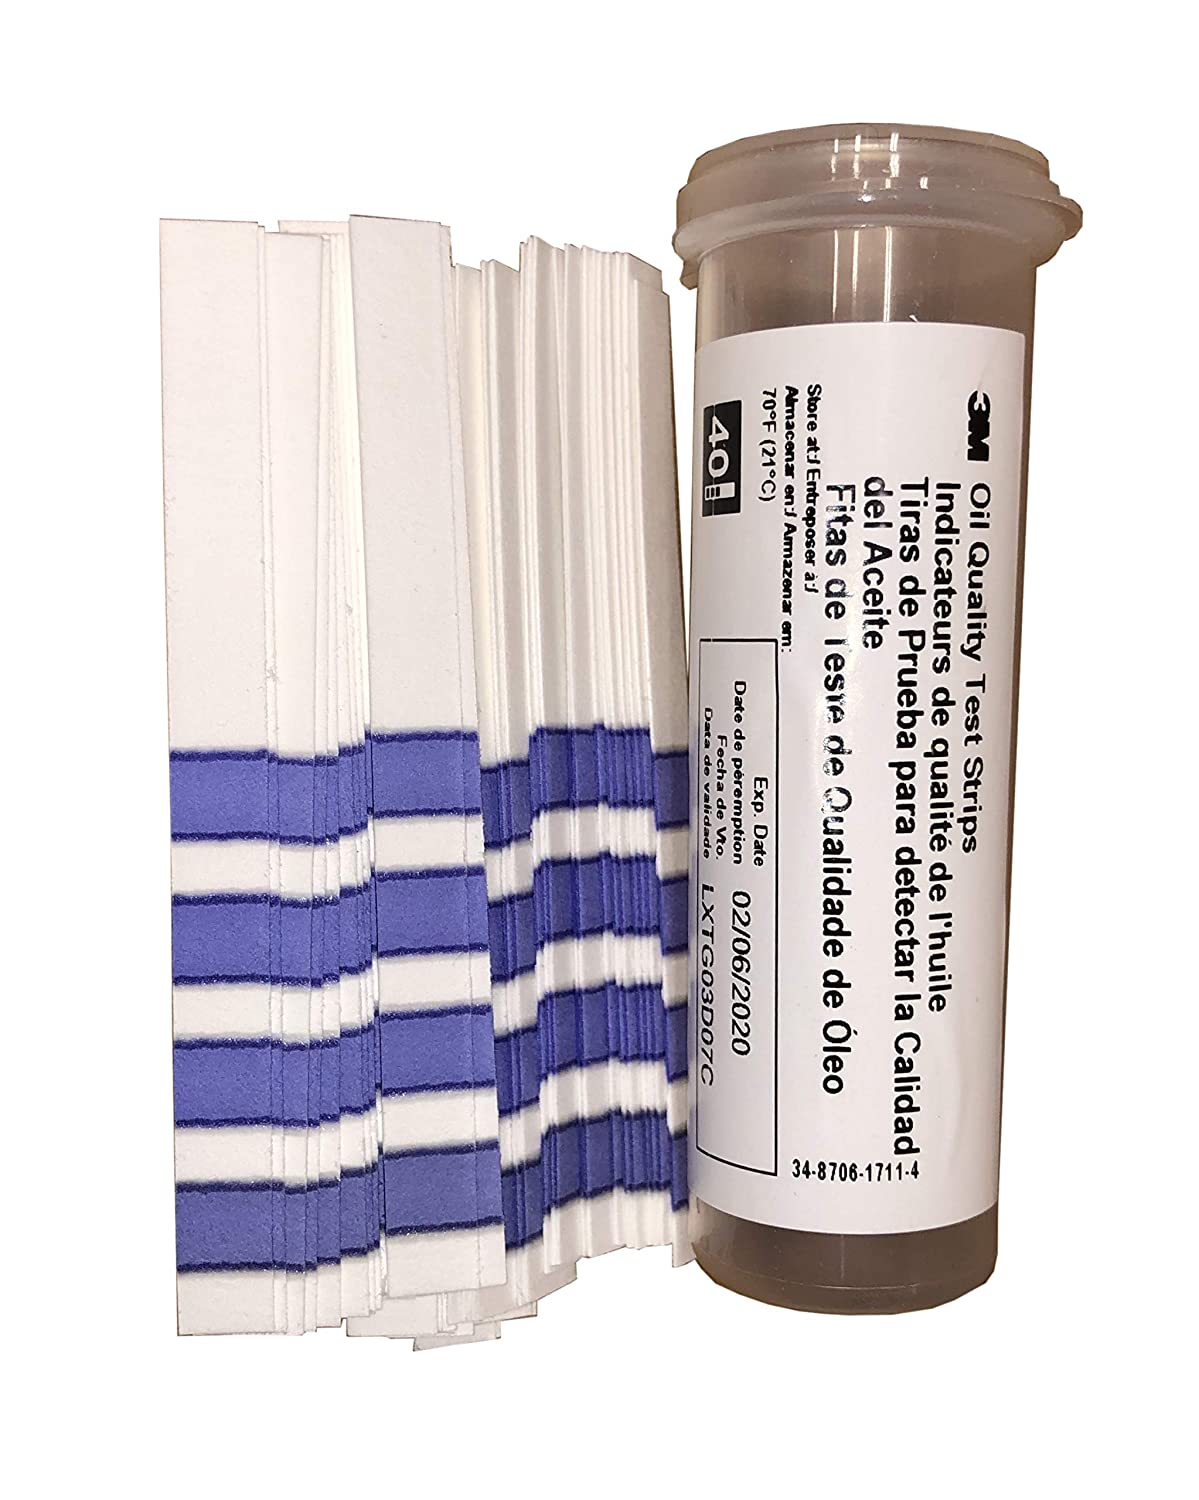  3M Frying Oil Quality Test Strips Kit, 1010 FMP 133-1232, Monitor Shortening Quality, Prevent Poor Food Quality with Shortening Quality Oil Test Paper, 1 Bottle of 40 Oil Test Strips